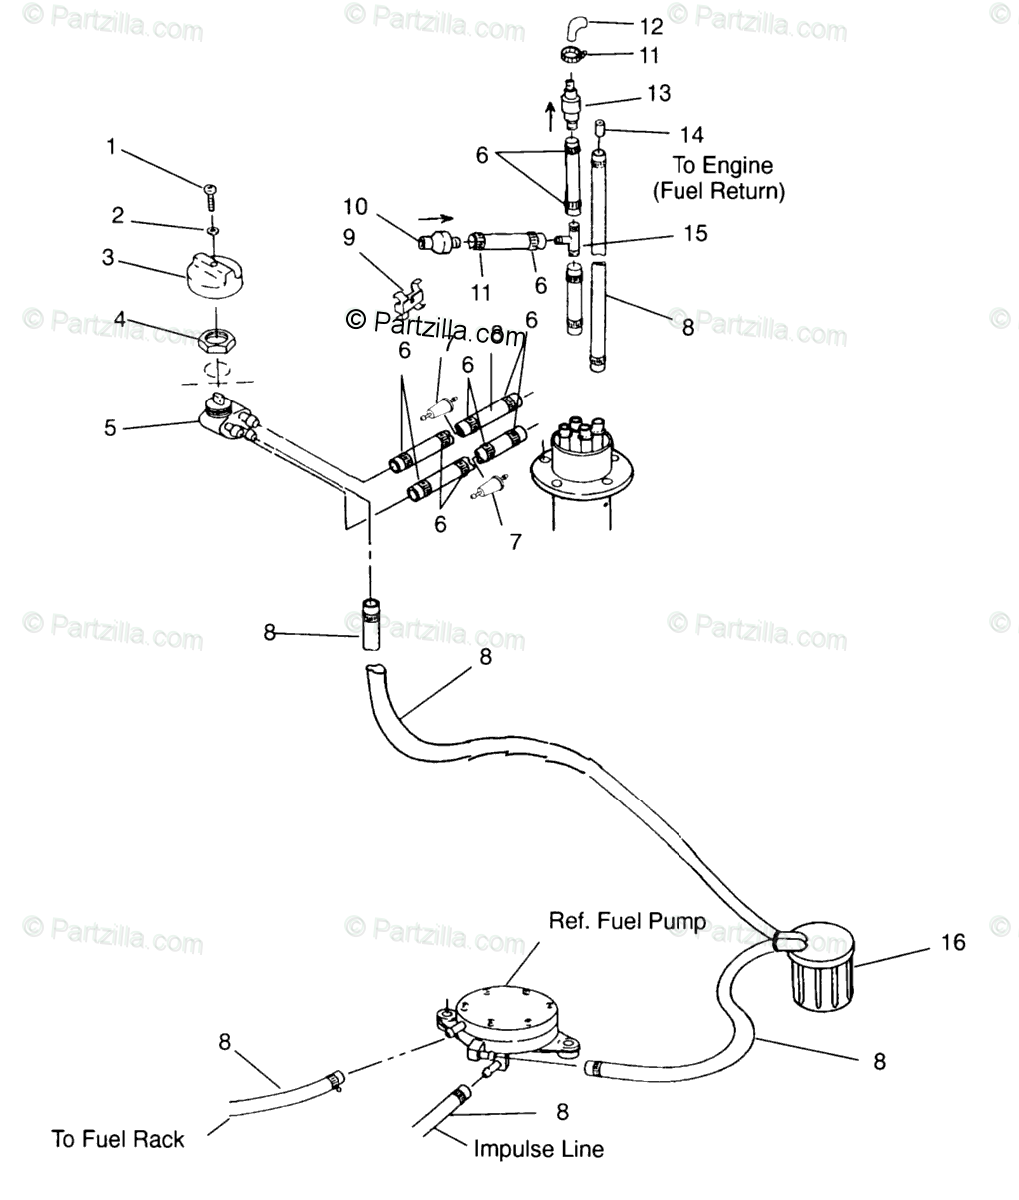 Polaris Watercraft 1995 OEM Parts Diagram for Fuel System